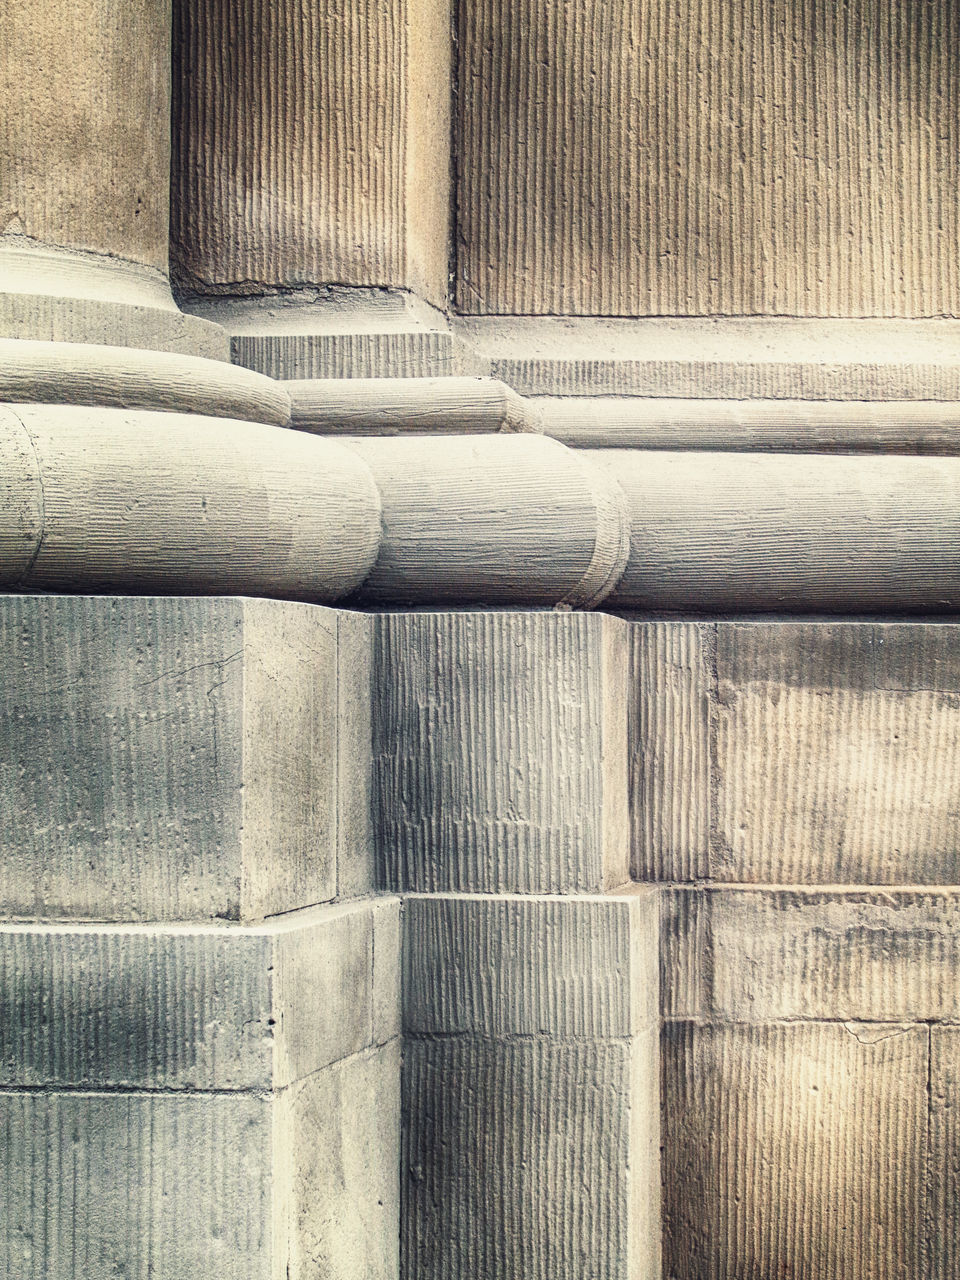 architecture, pattern, full frame, built structure, no people, backgrounds, day, close-up, textured, wall - building feature, sunlight, indoors, pipe - tube, architectural column, pipeline, metal, staircase, wood - material, concrete, ceiling, silver colored